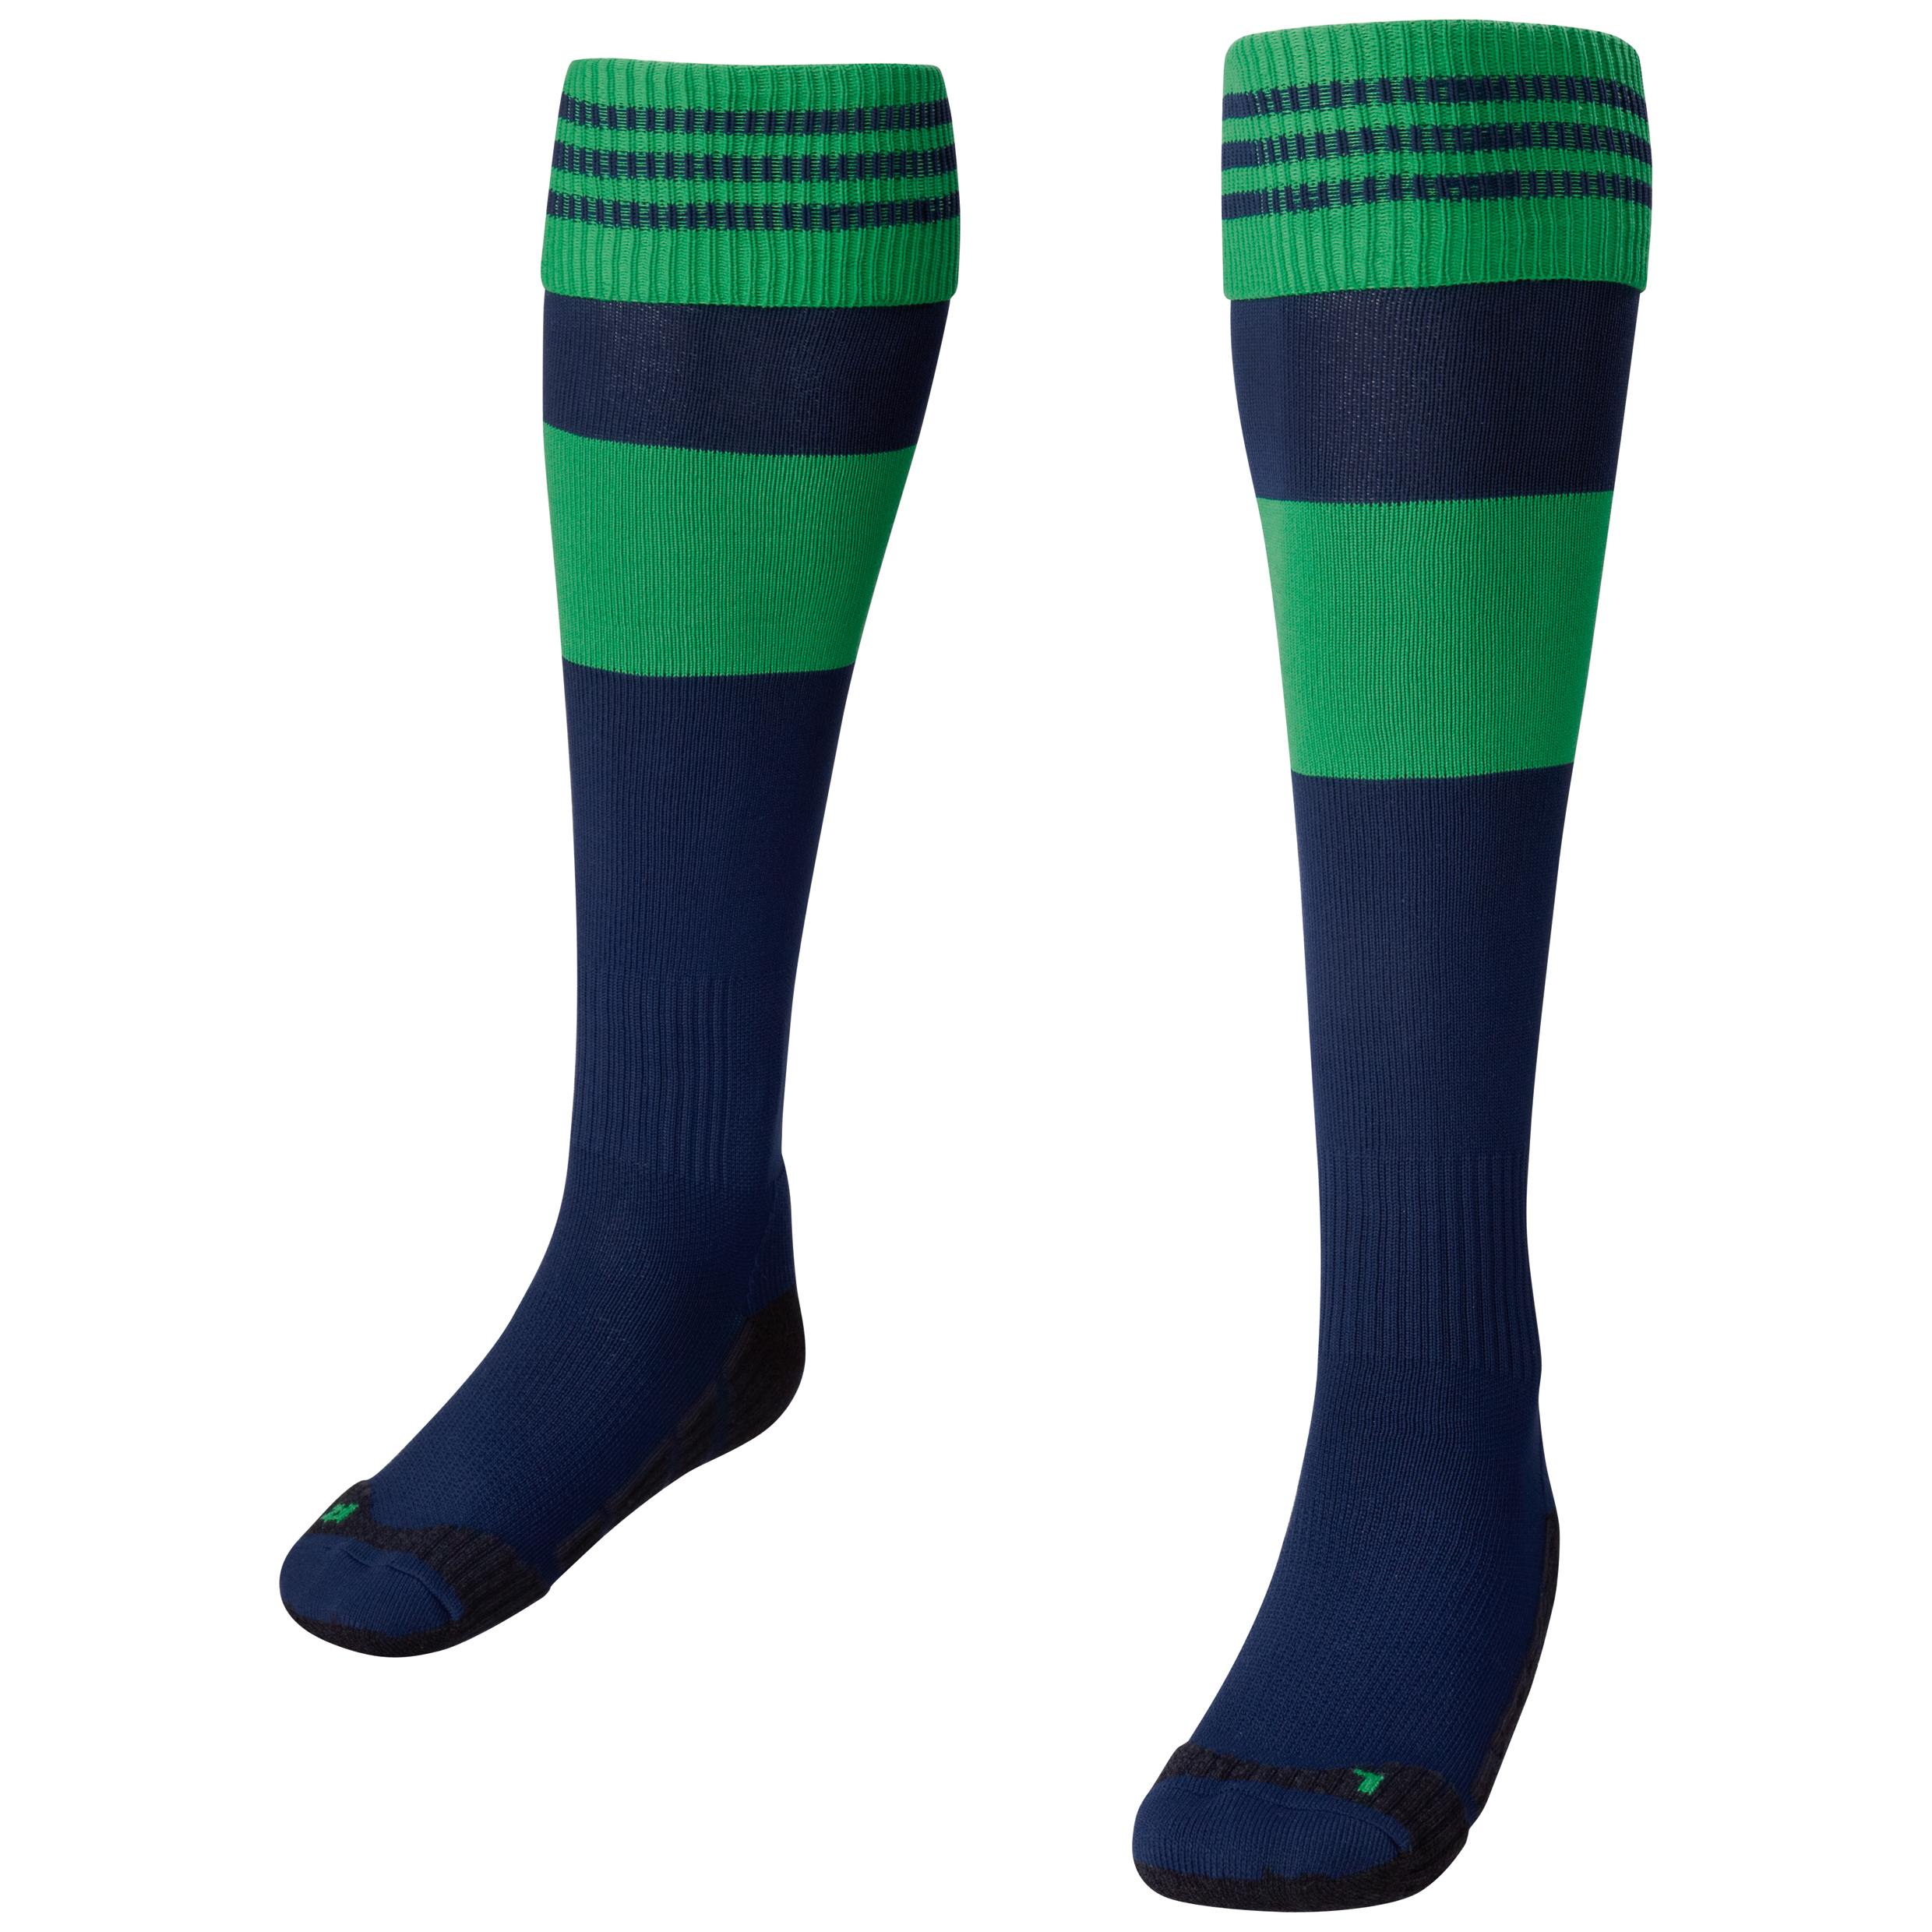 British & Irish Lions Home Socks 2013 - Kids